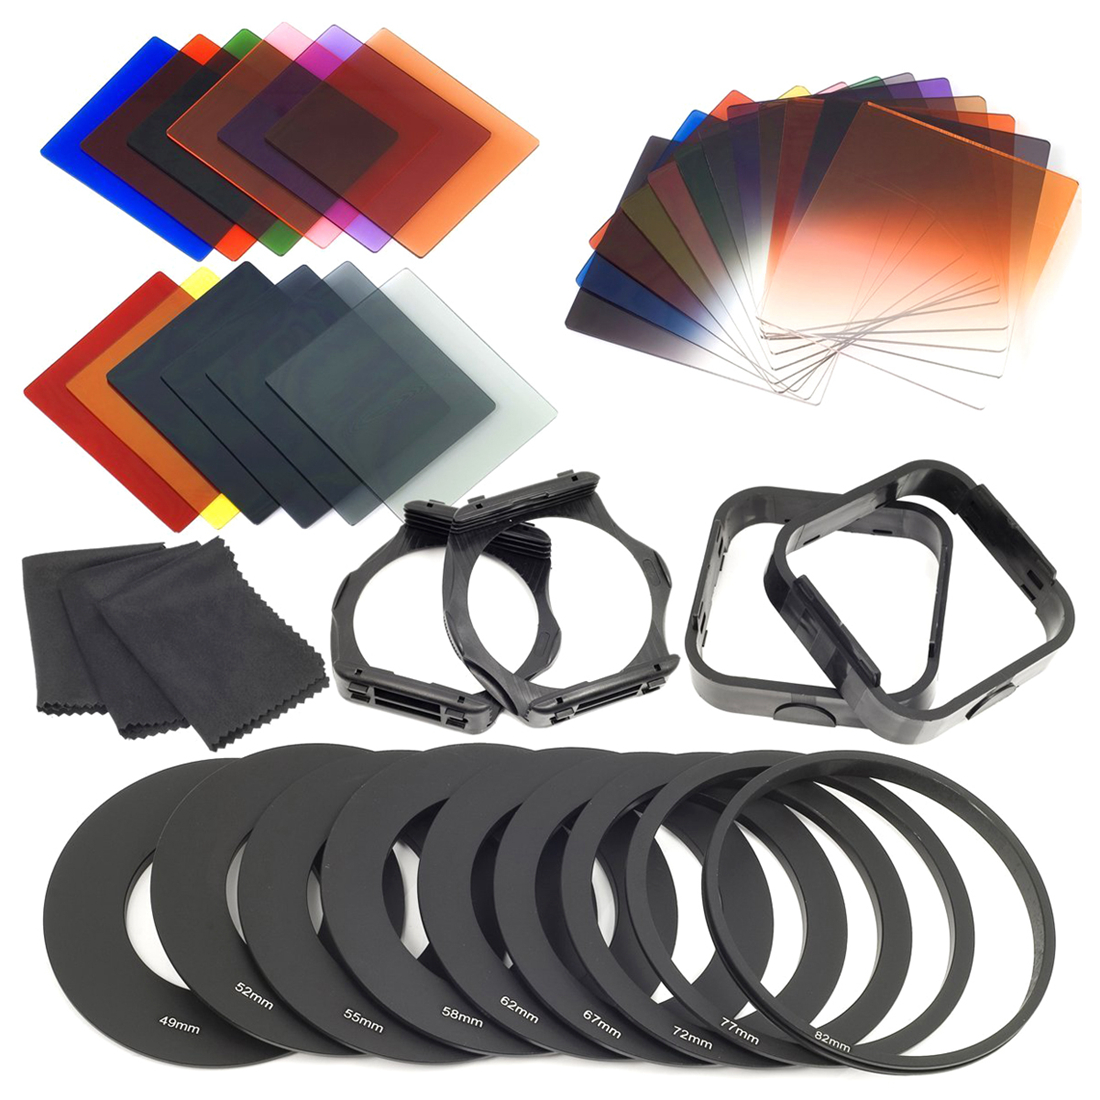 Top Deals 24pcs ND + Graduated Filters + 9pcs Adapter Ring, Lens Hood Filter Holder for cokin p series